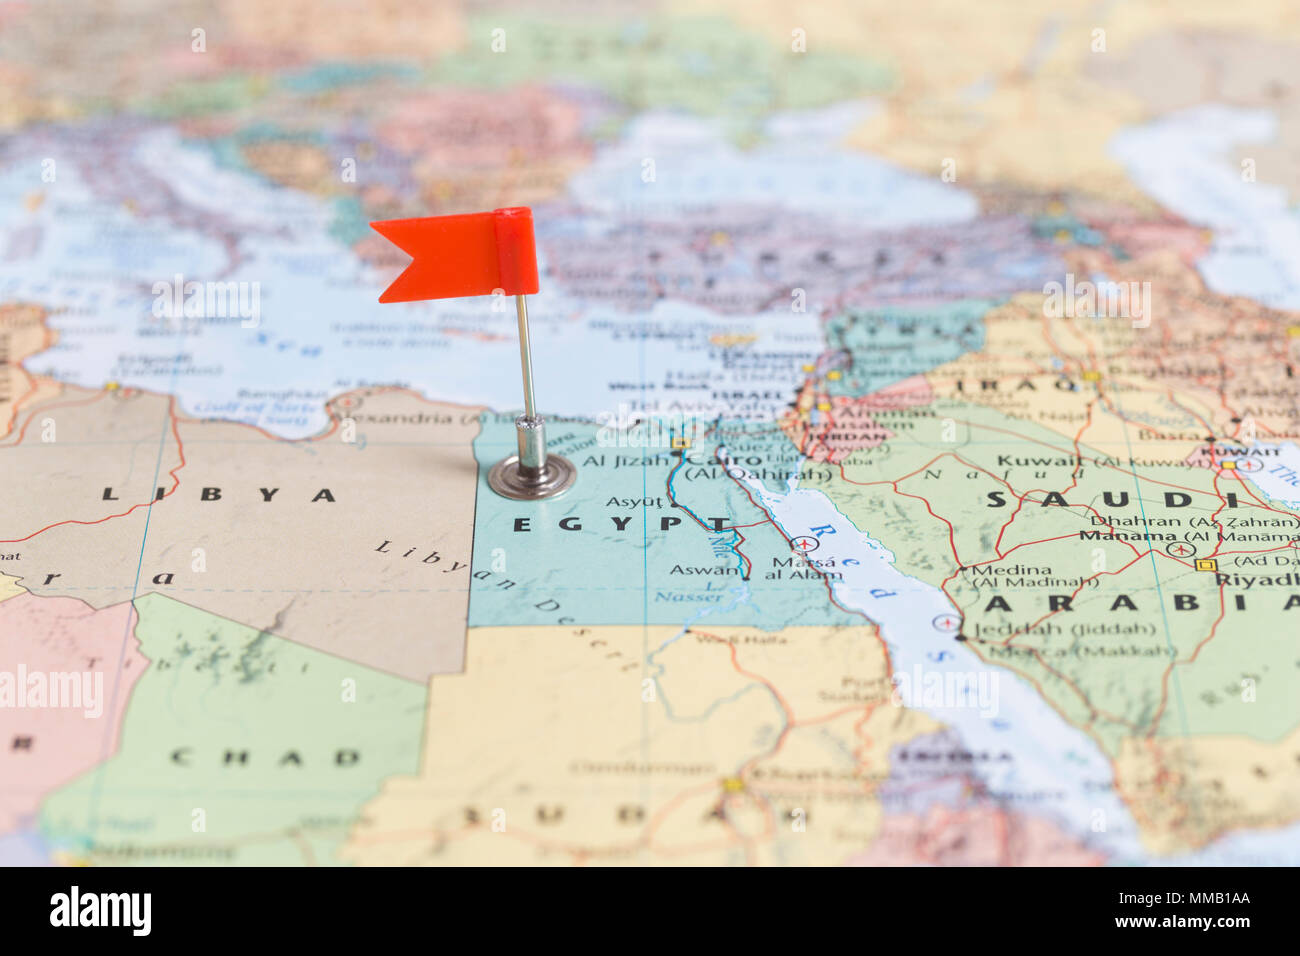 Small red flag marking the African country of Egypt on a world map on ancient egypt, geography egypt, the band egypt, kush egypt, camels in egypt, library of egypt, world atlas, arab six egypt, cairo egypt, africa egypt, physical features of egypt, jordan egypt, pyramids of egypt, pharaohs of egypt, neighbors of egypt, goshen egypt, land marks of egypt, animals egypt, winter in egypt,